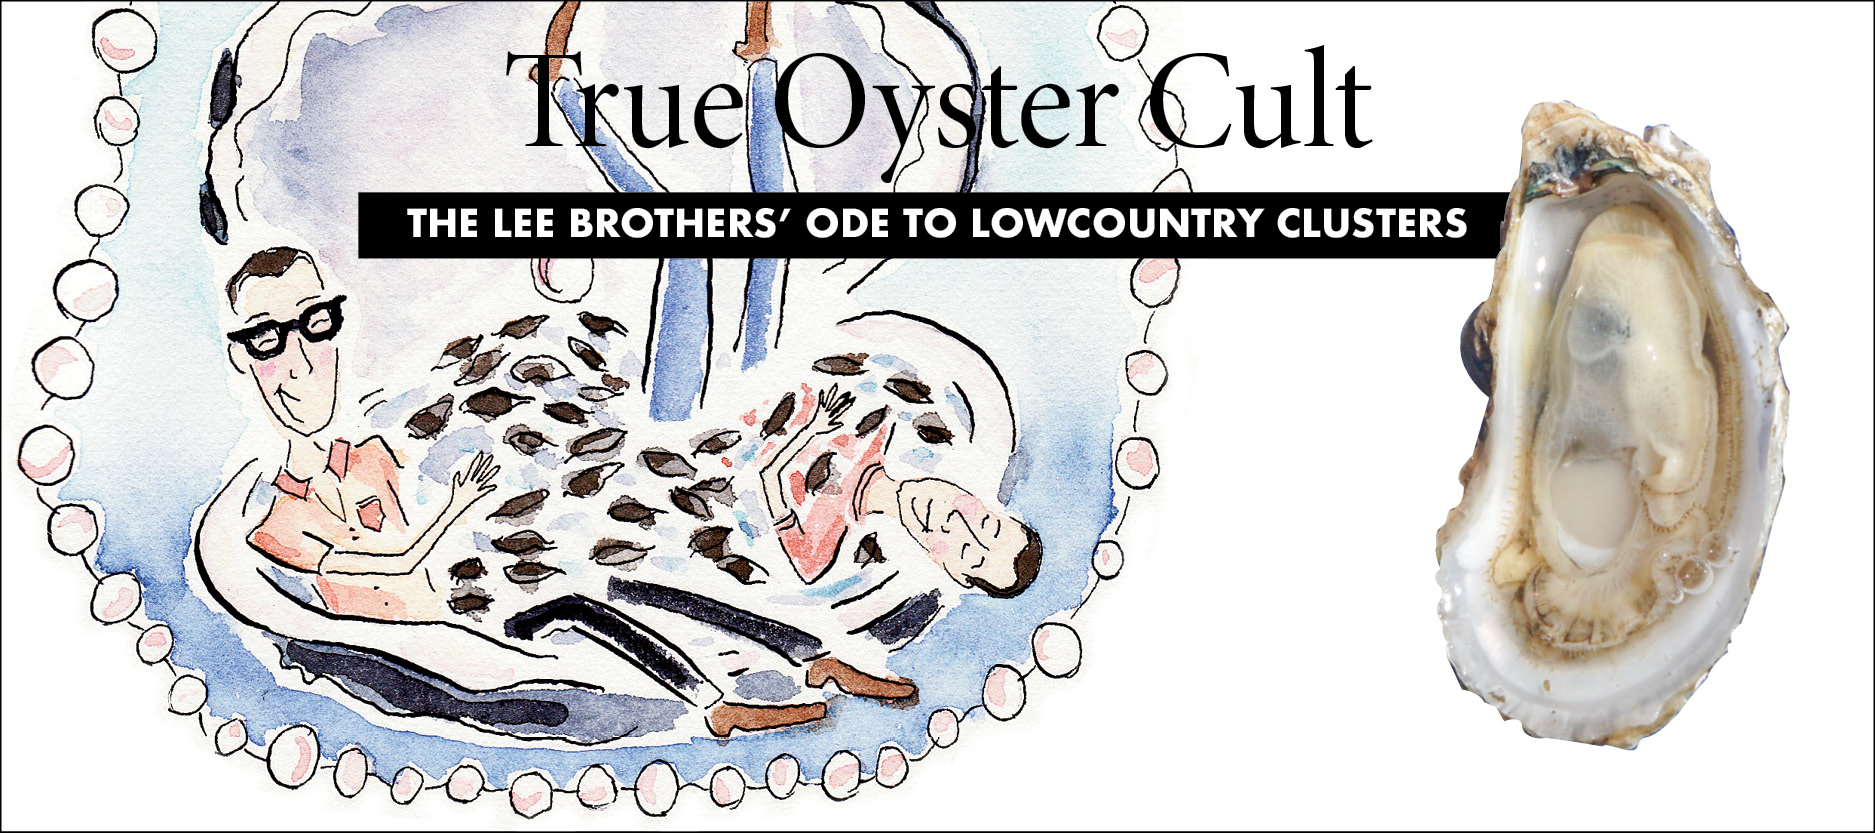 The Lee Brothers's Ode to Lowcountry Clusters